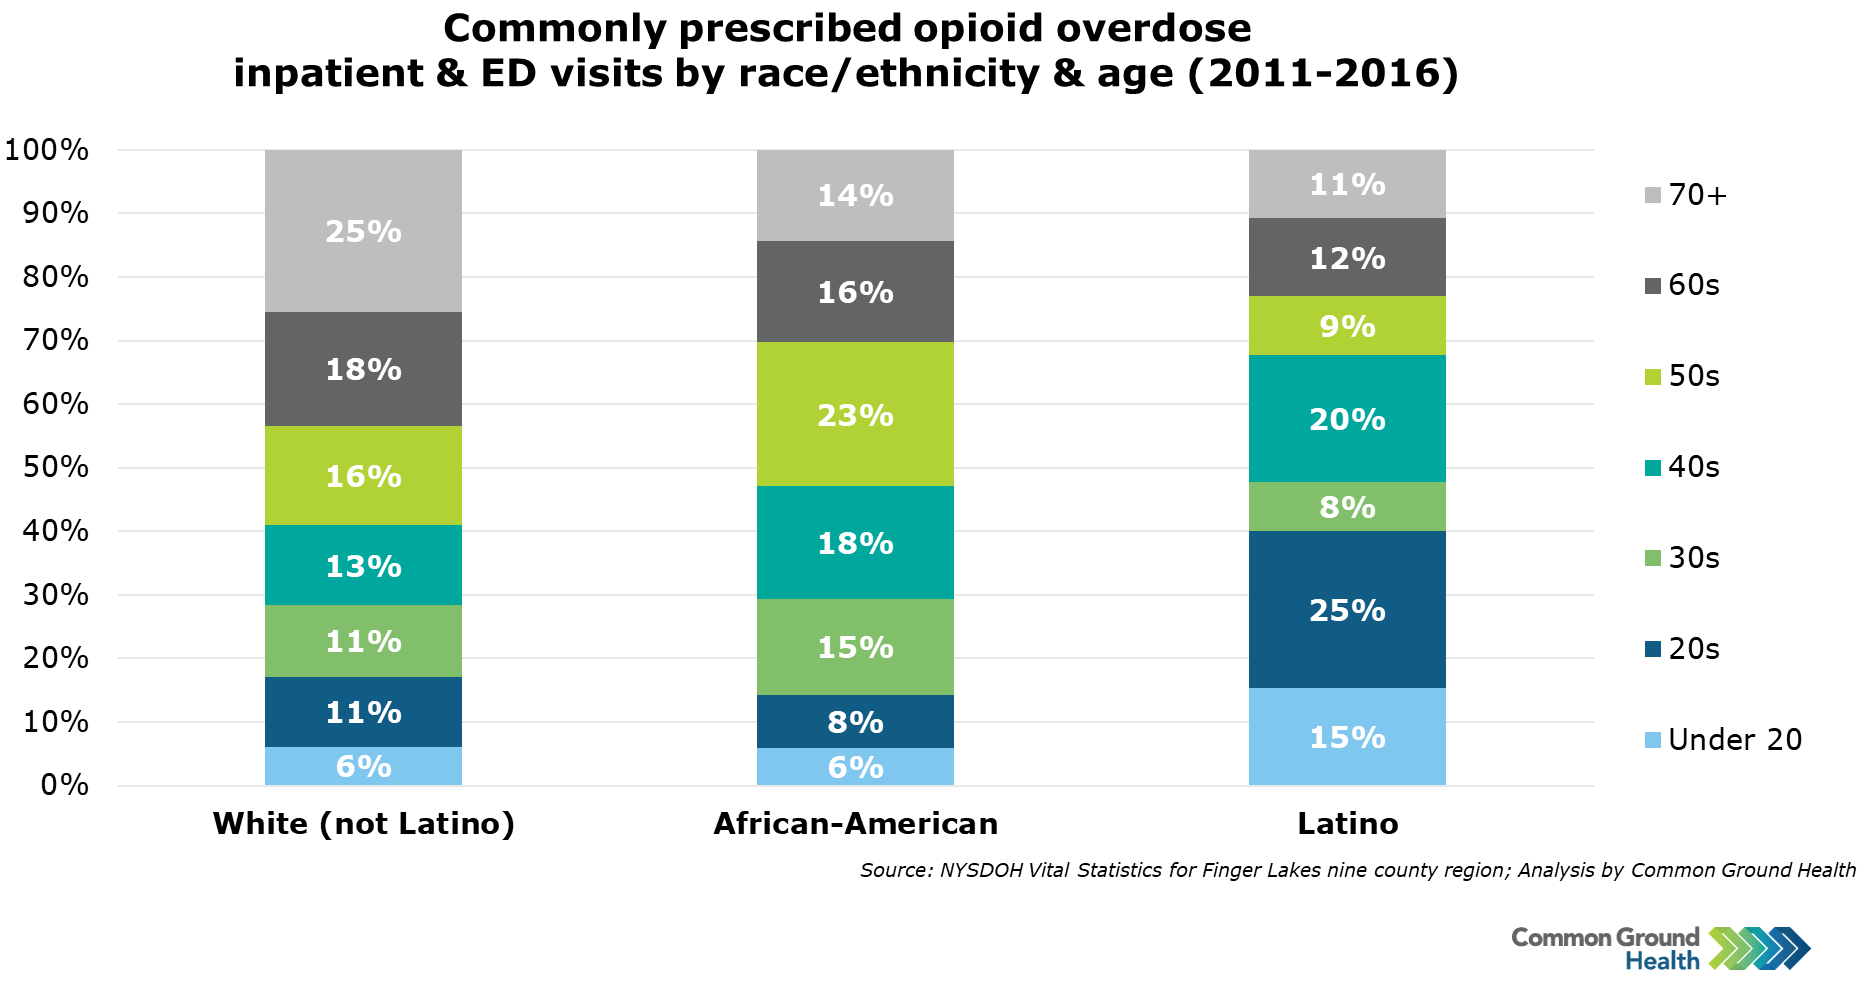 Commonly Prescribed Opioid Overdose Inpatient & ED Visits by Race/Ethnicity & Age